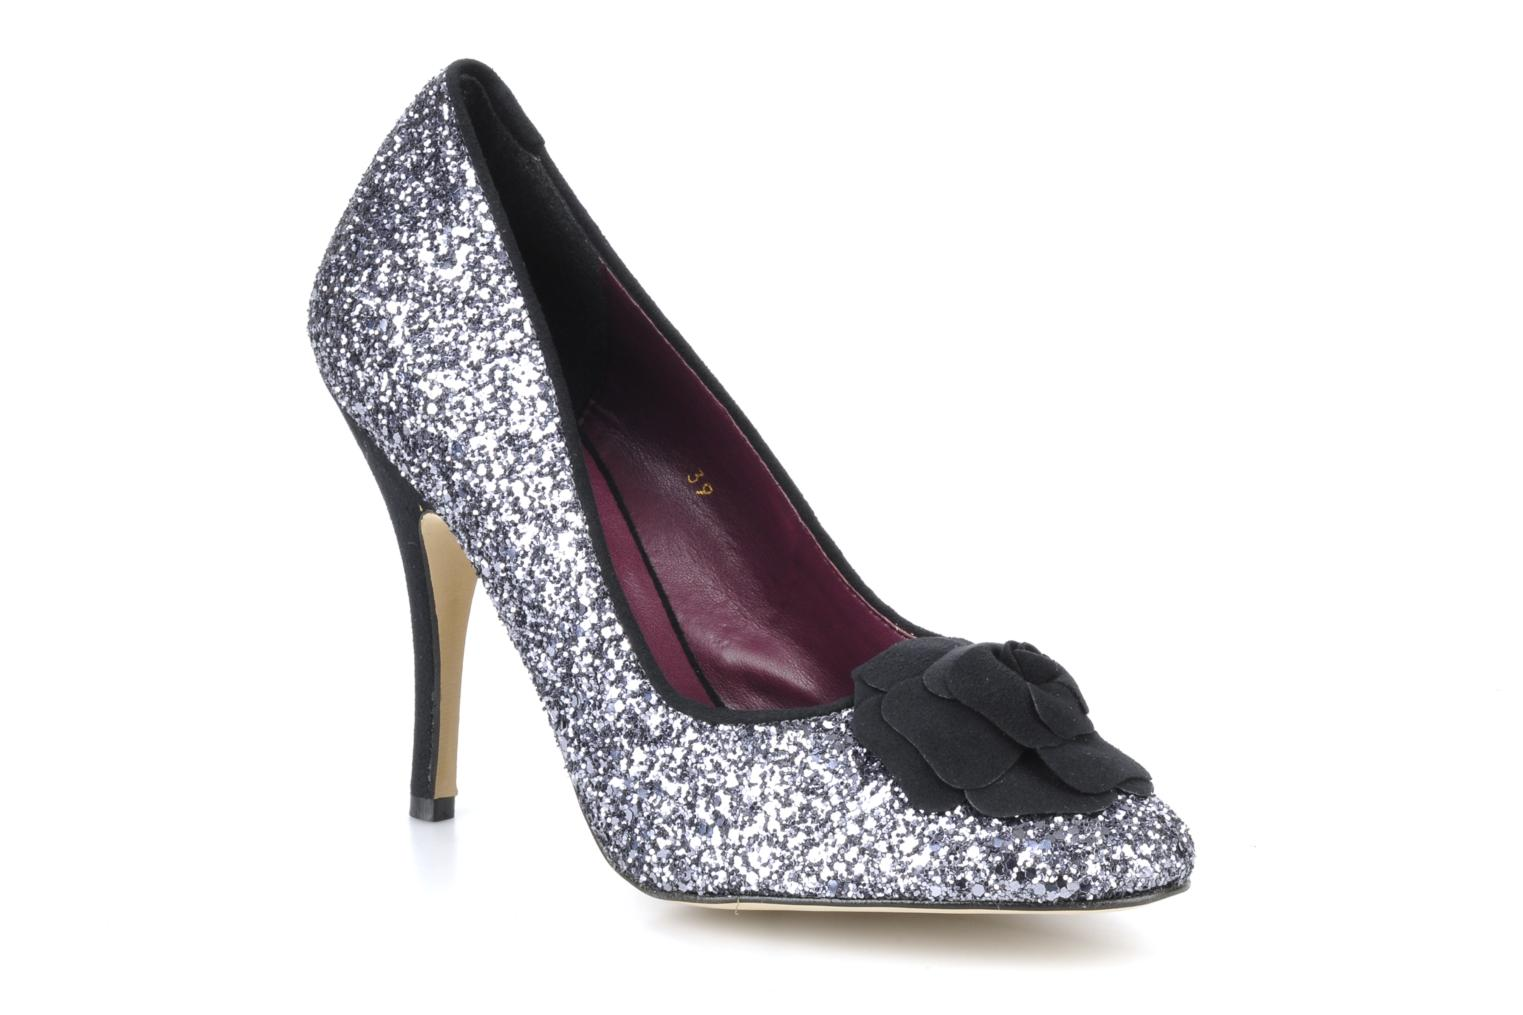 Marques Chaussure femme Beyond Skin femme SWEETIE Silver glitter